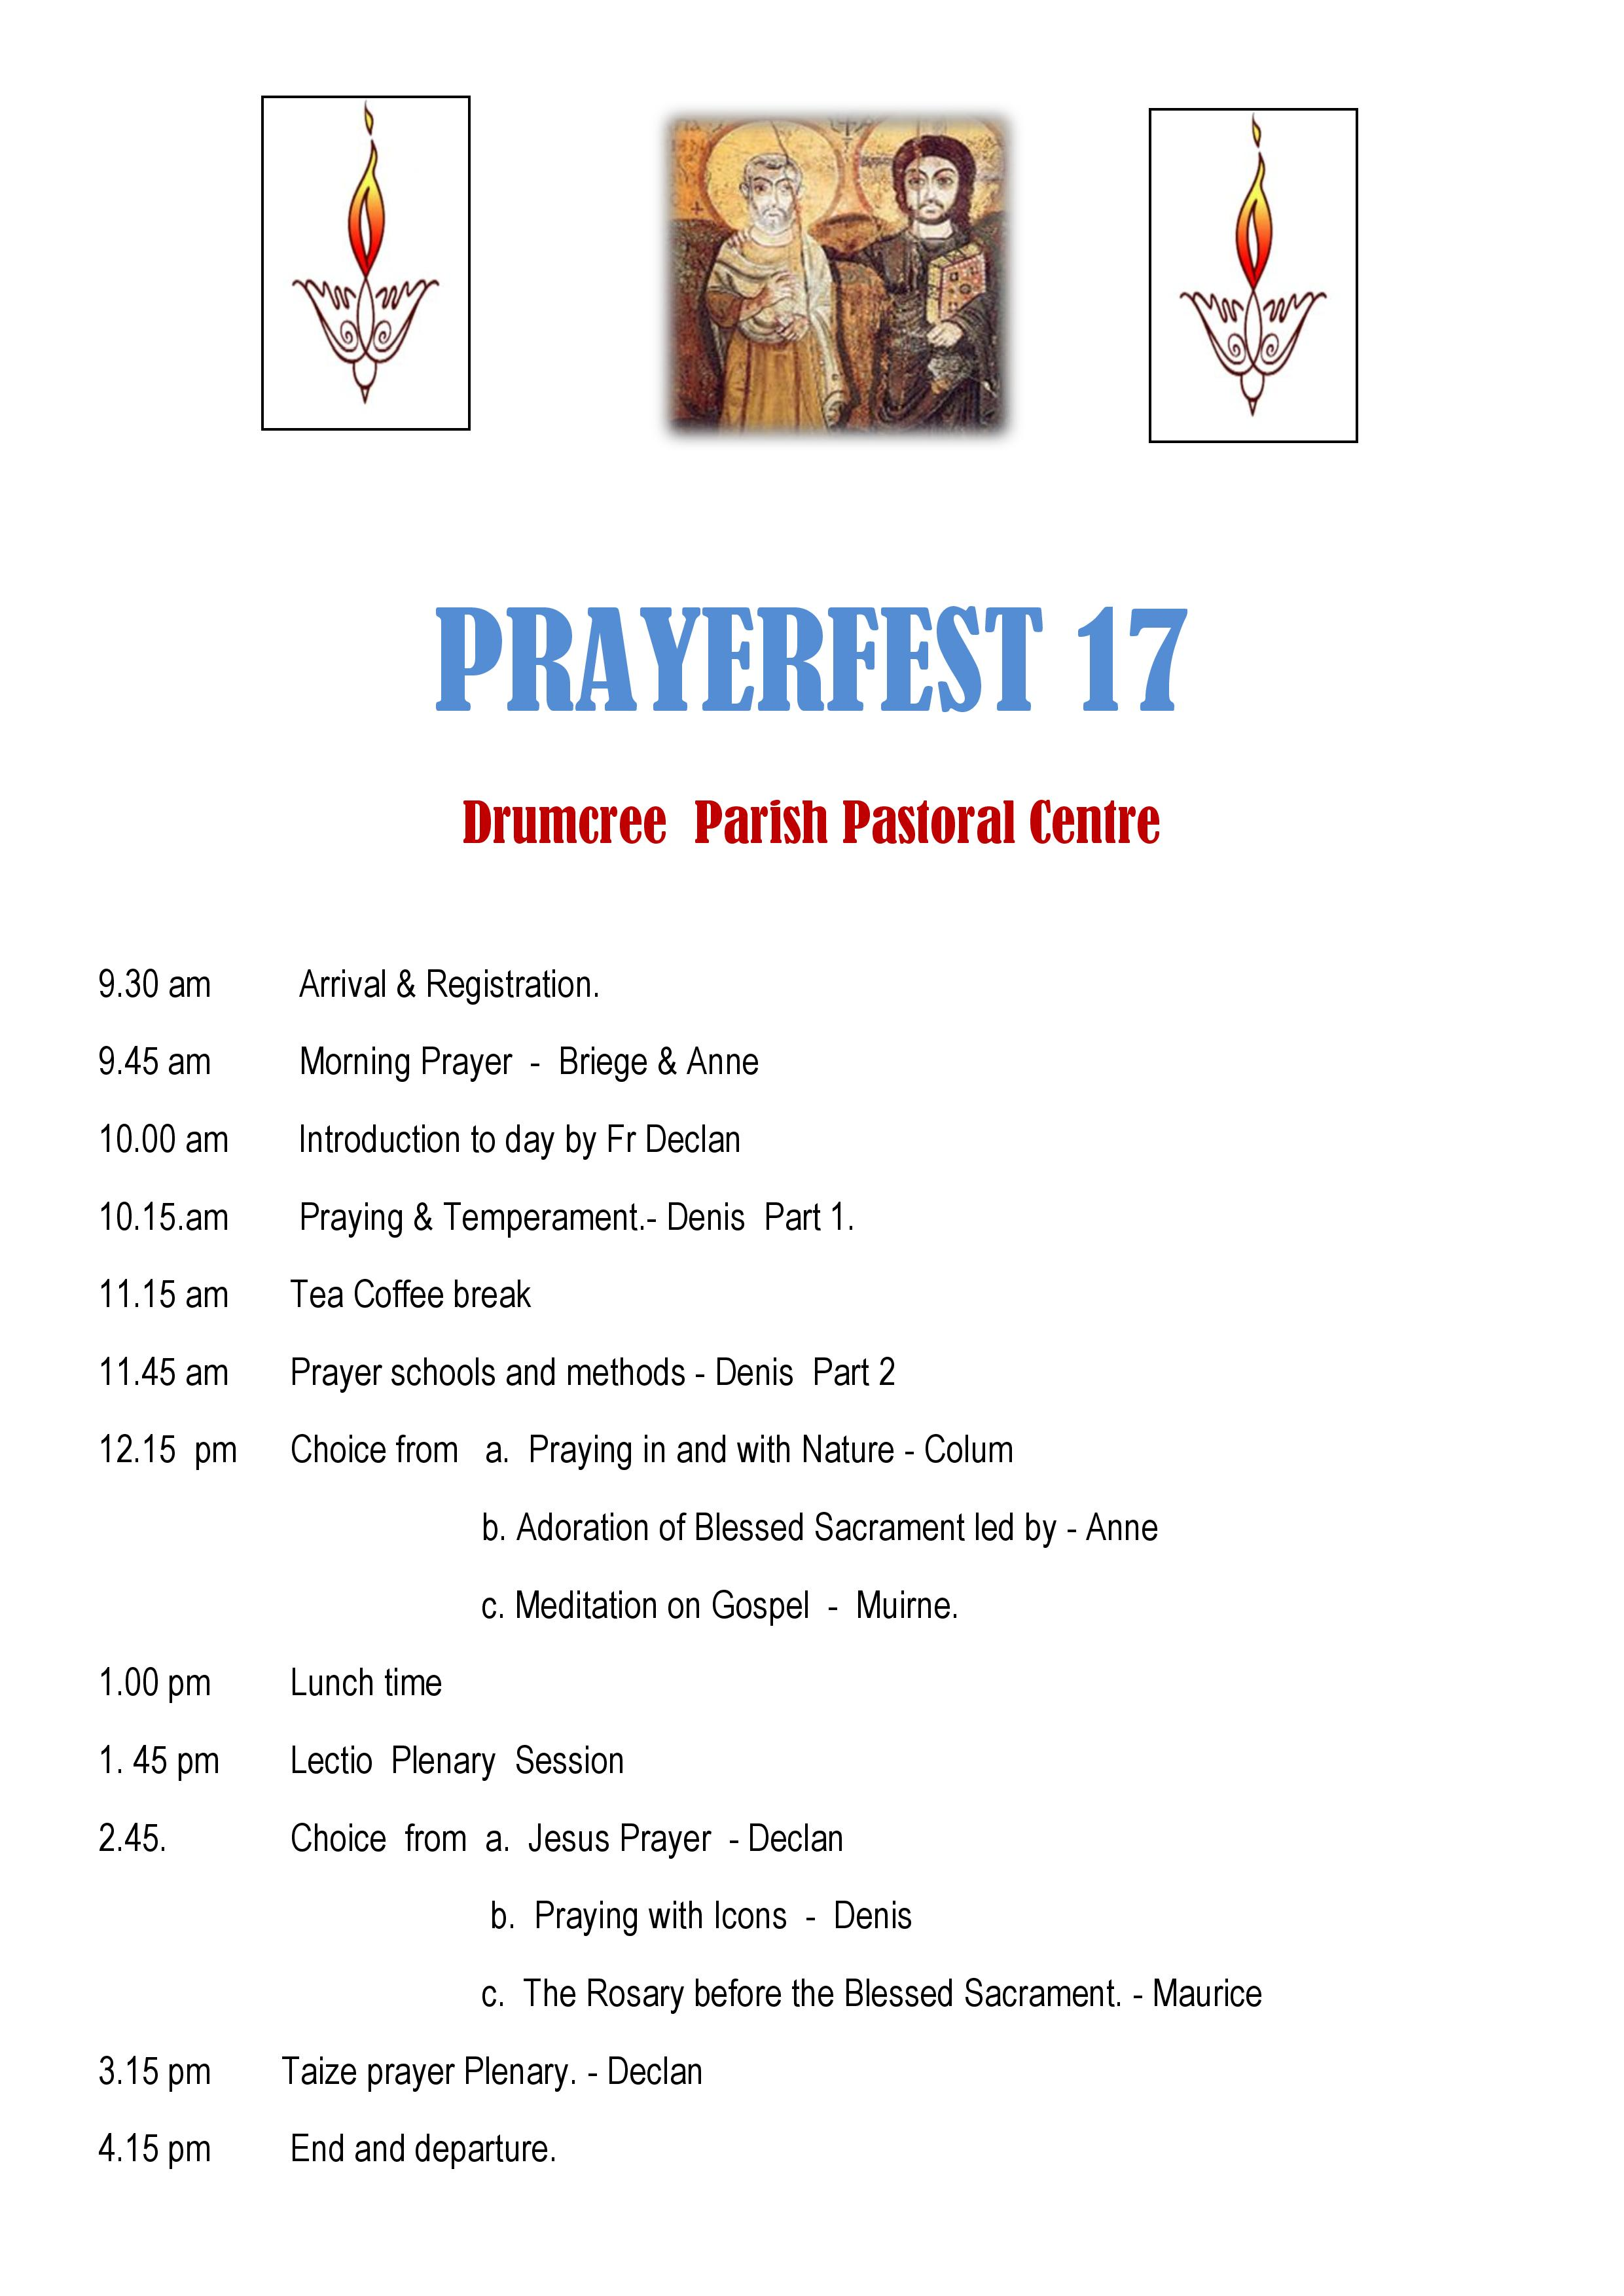 PRAYERFEST 17 Timetable-page-001